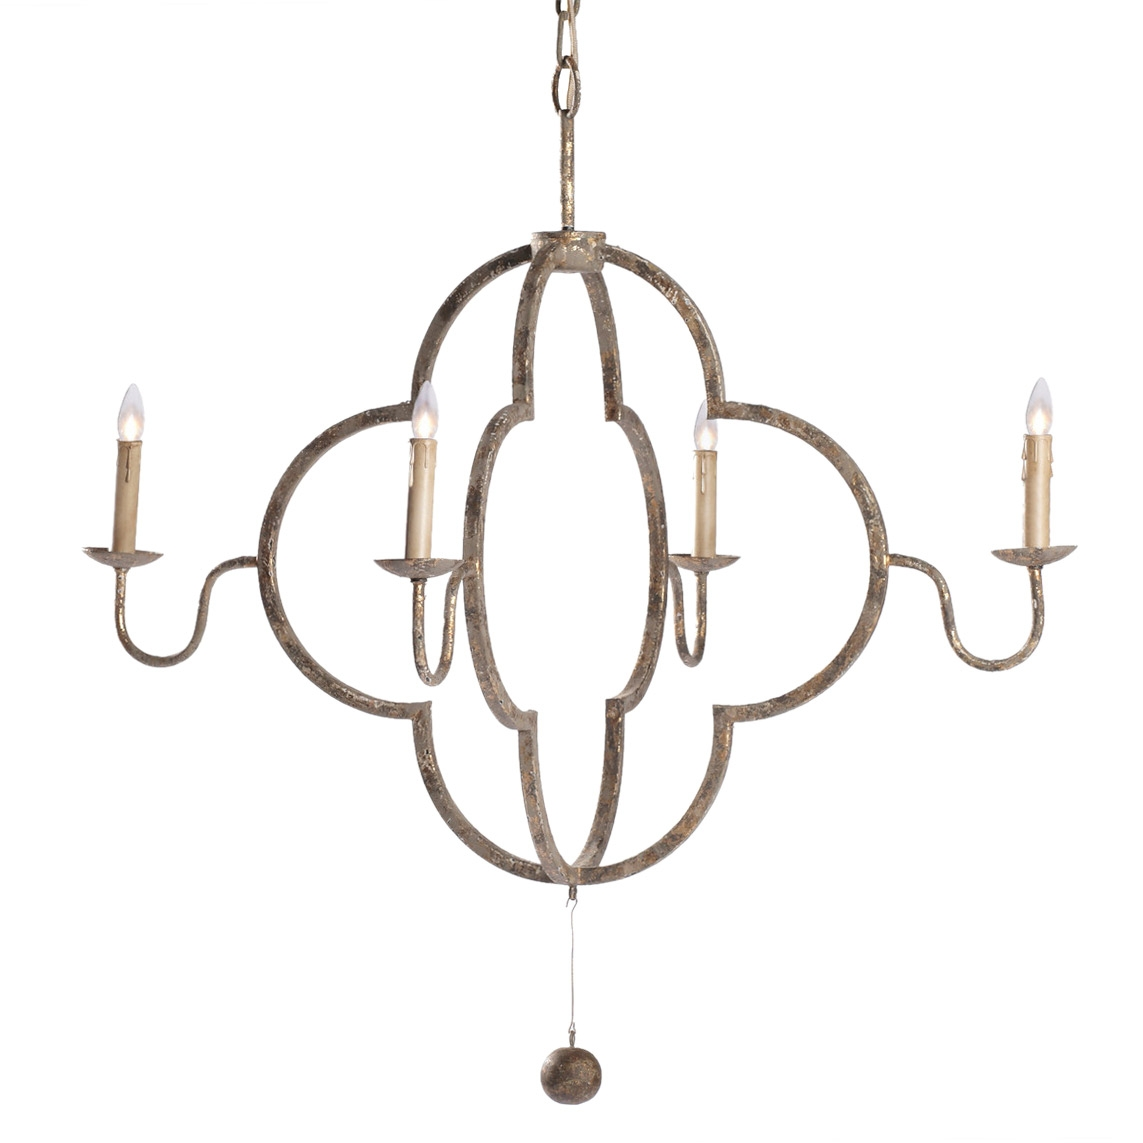 French Country Lighting Style Chandeliers Table Lamps Wall Pertaining To French Chandeliers (View 5 of 15)